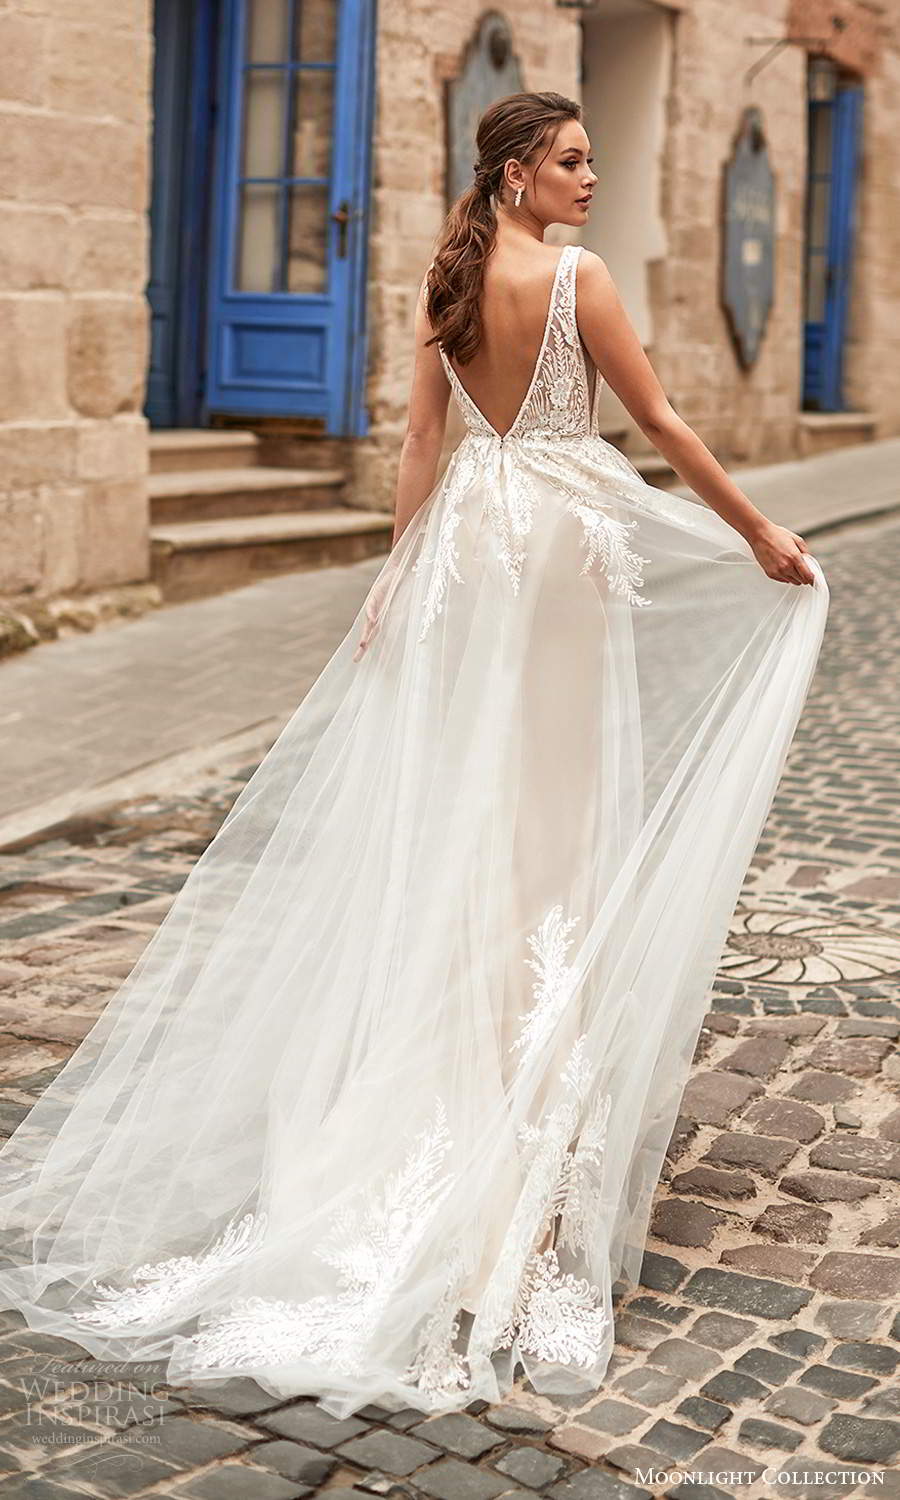 moonlight collection spring 2021 bridal sleeveless straps plunging v neckline embellished bodie a line ball gown wedding dress chapel train blush (1) bv